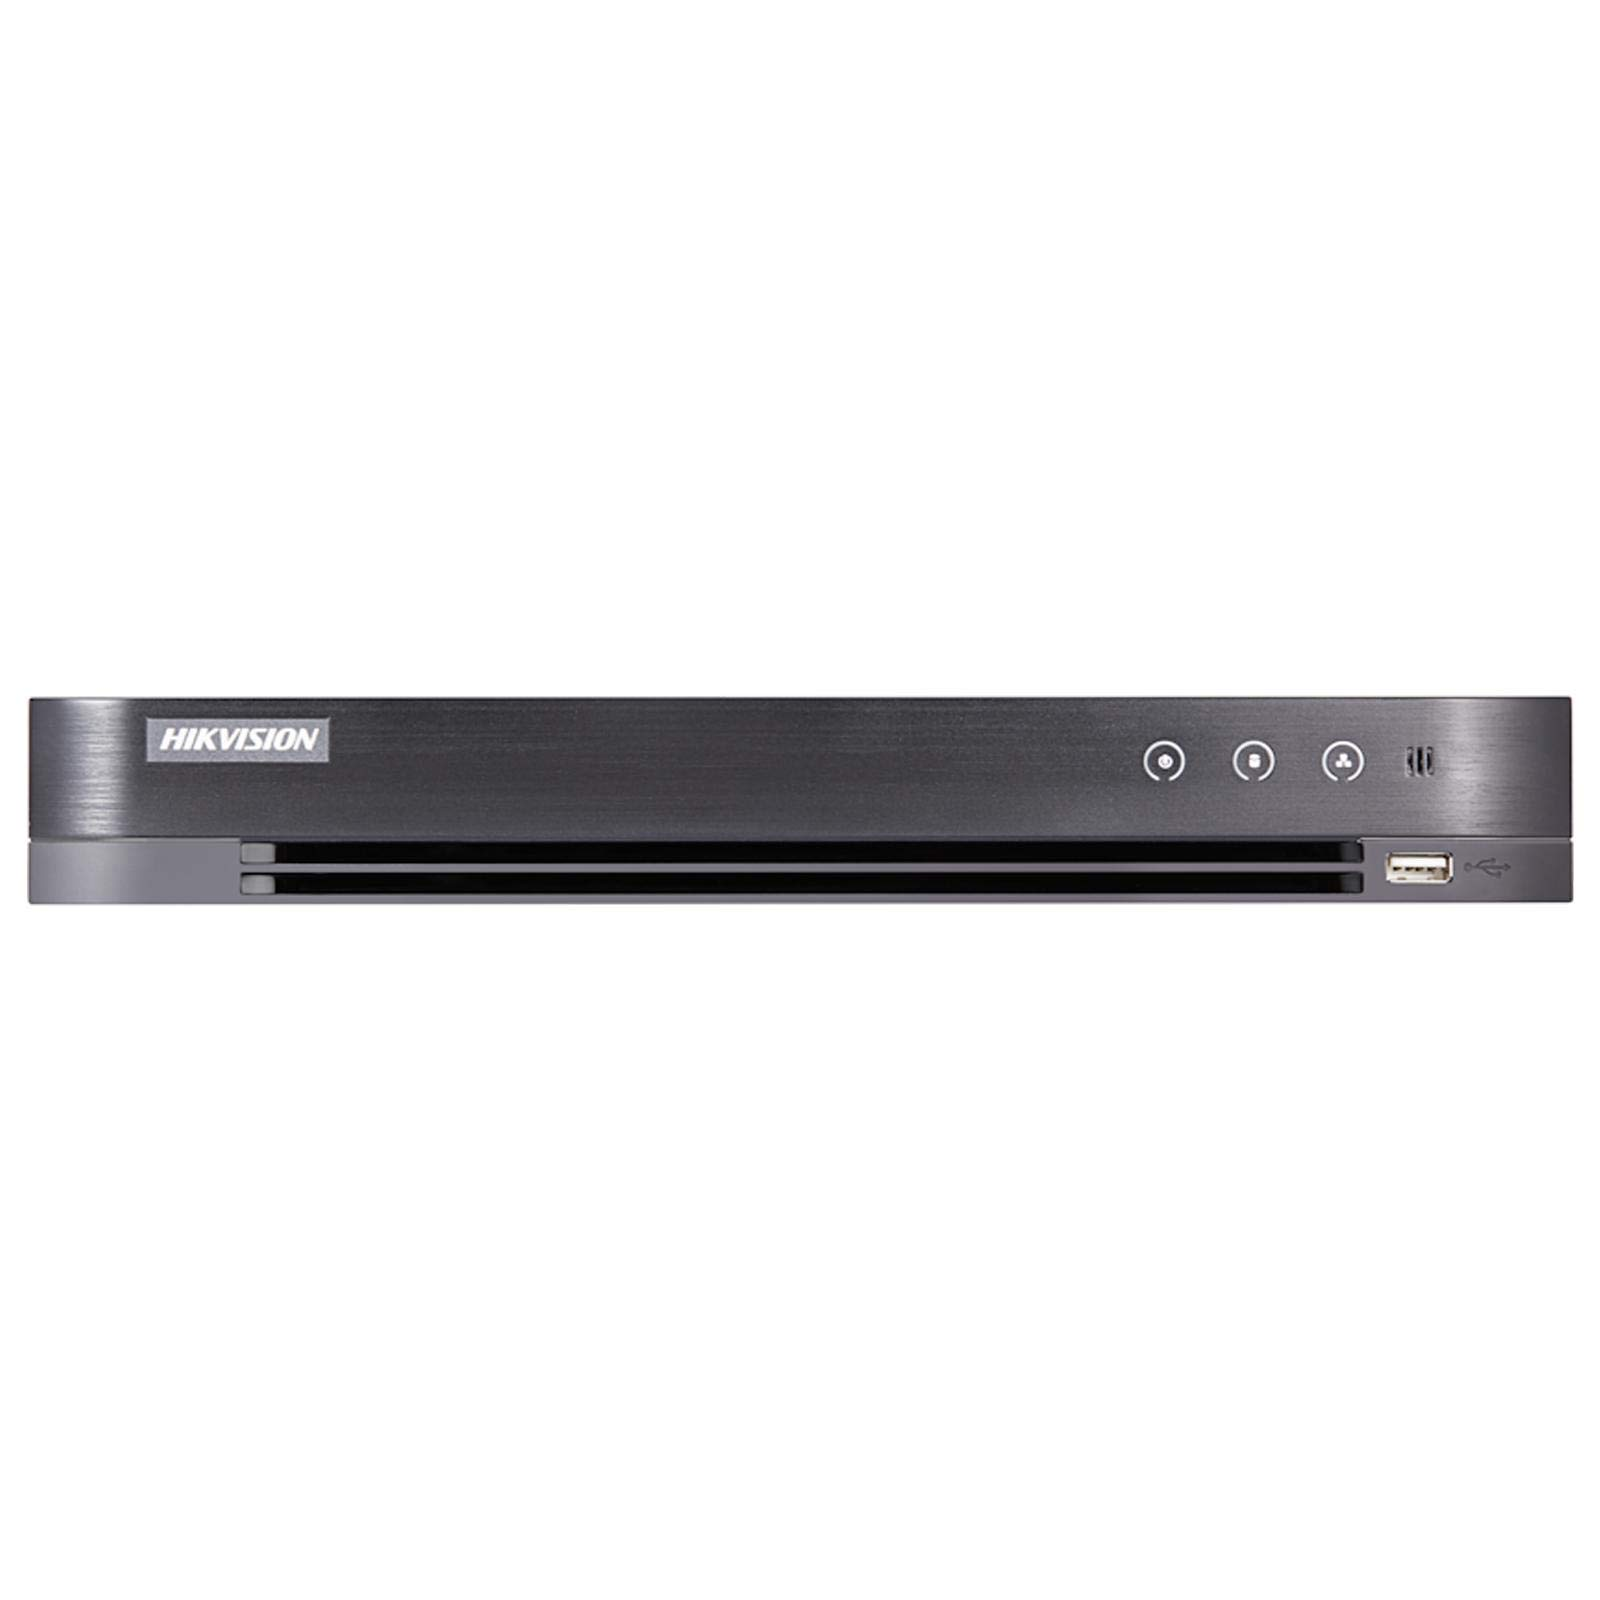 Hikvision DS 7208HQHI K1 Supports CH1 CH4 Included